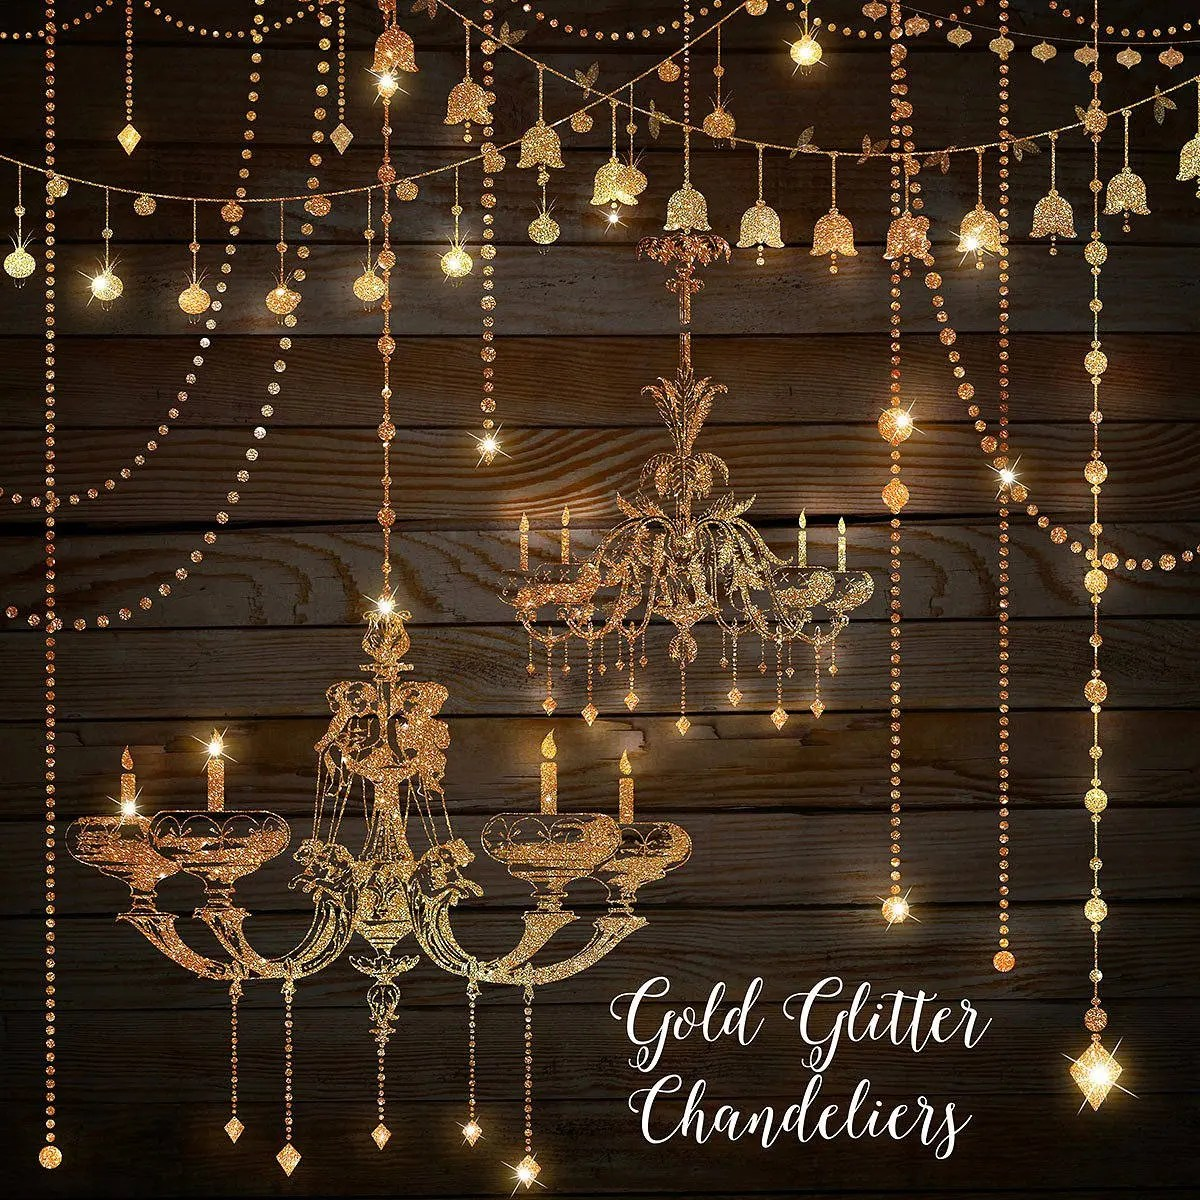 Gold Glitter Chandeliers Clipart Chandelier Clip Art String